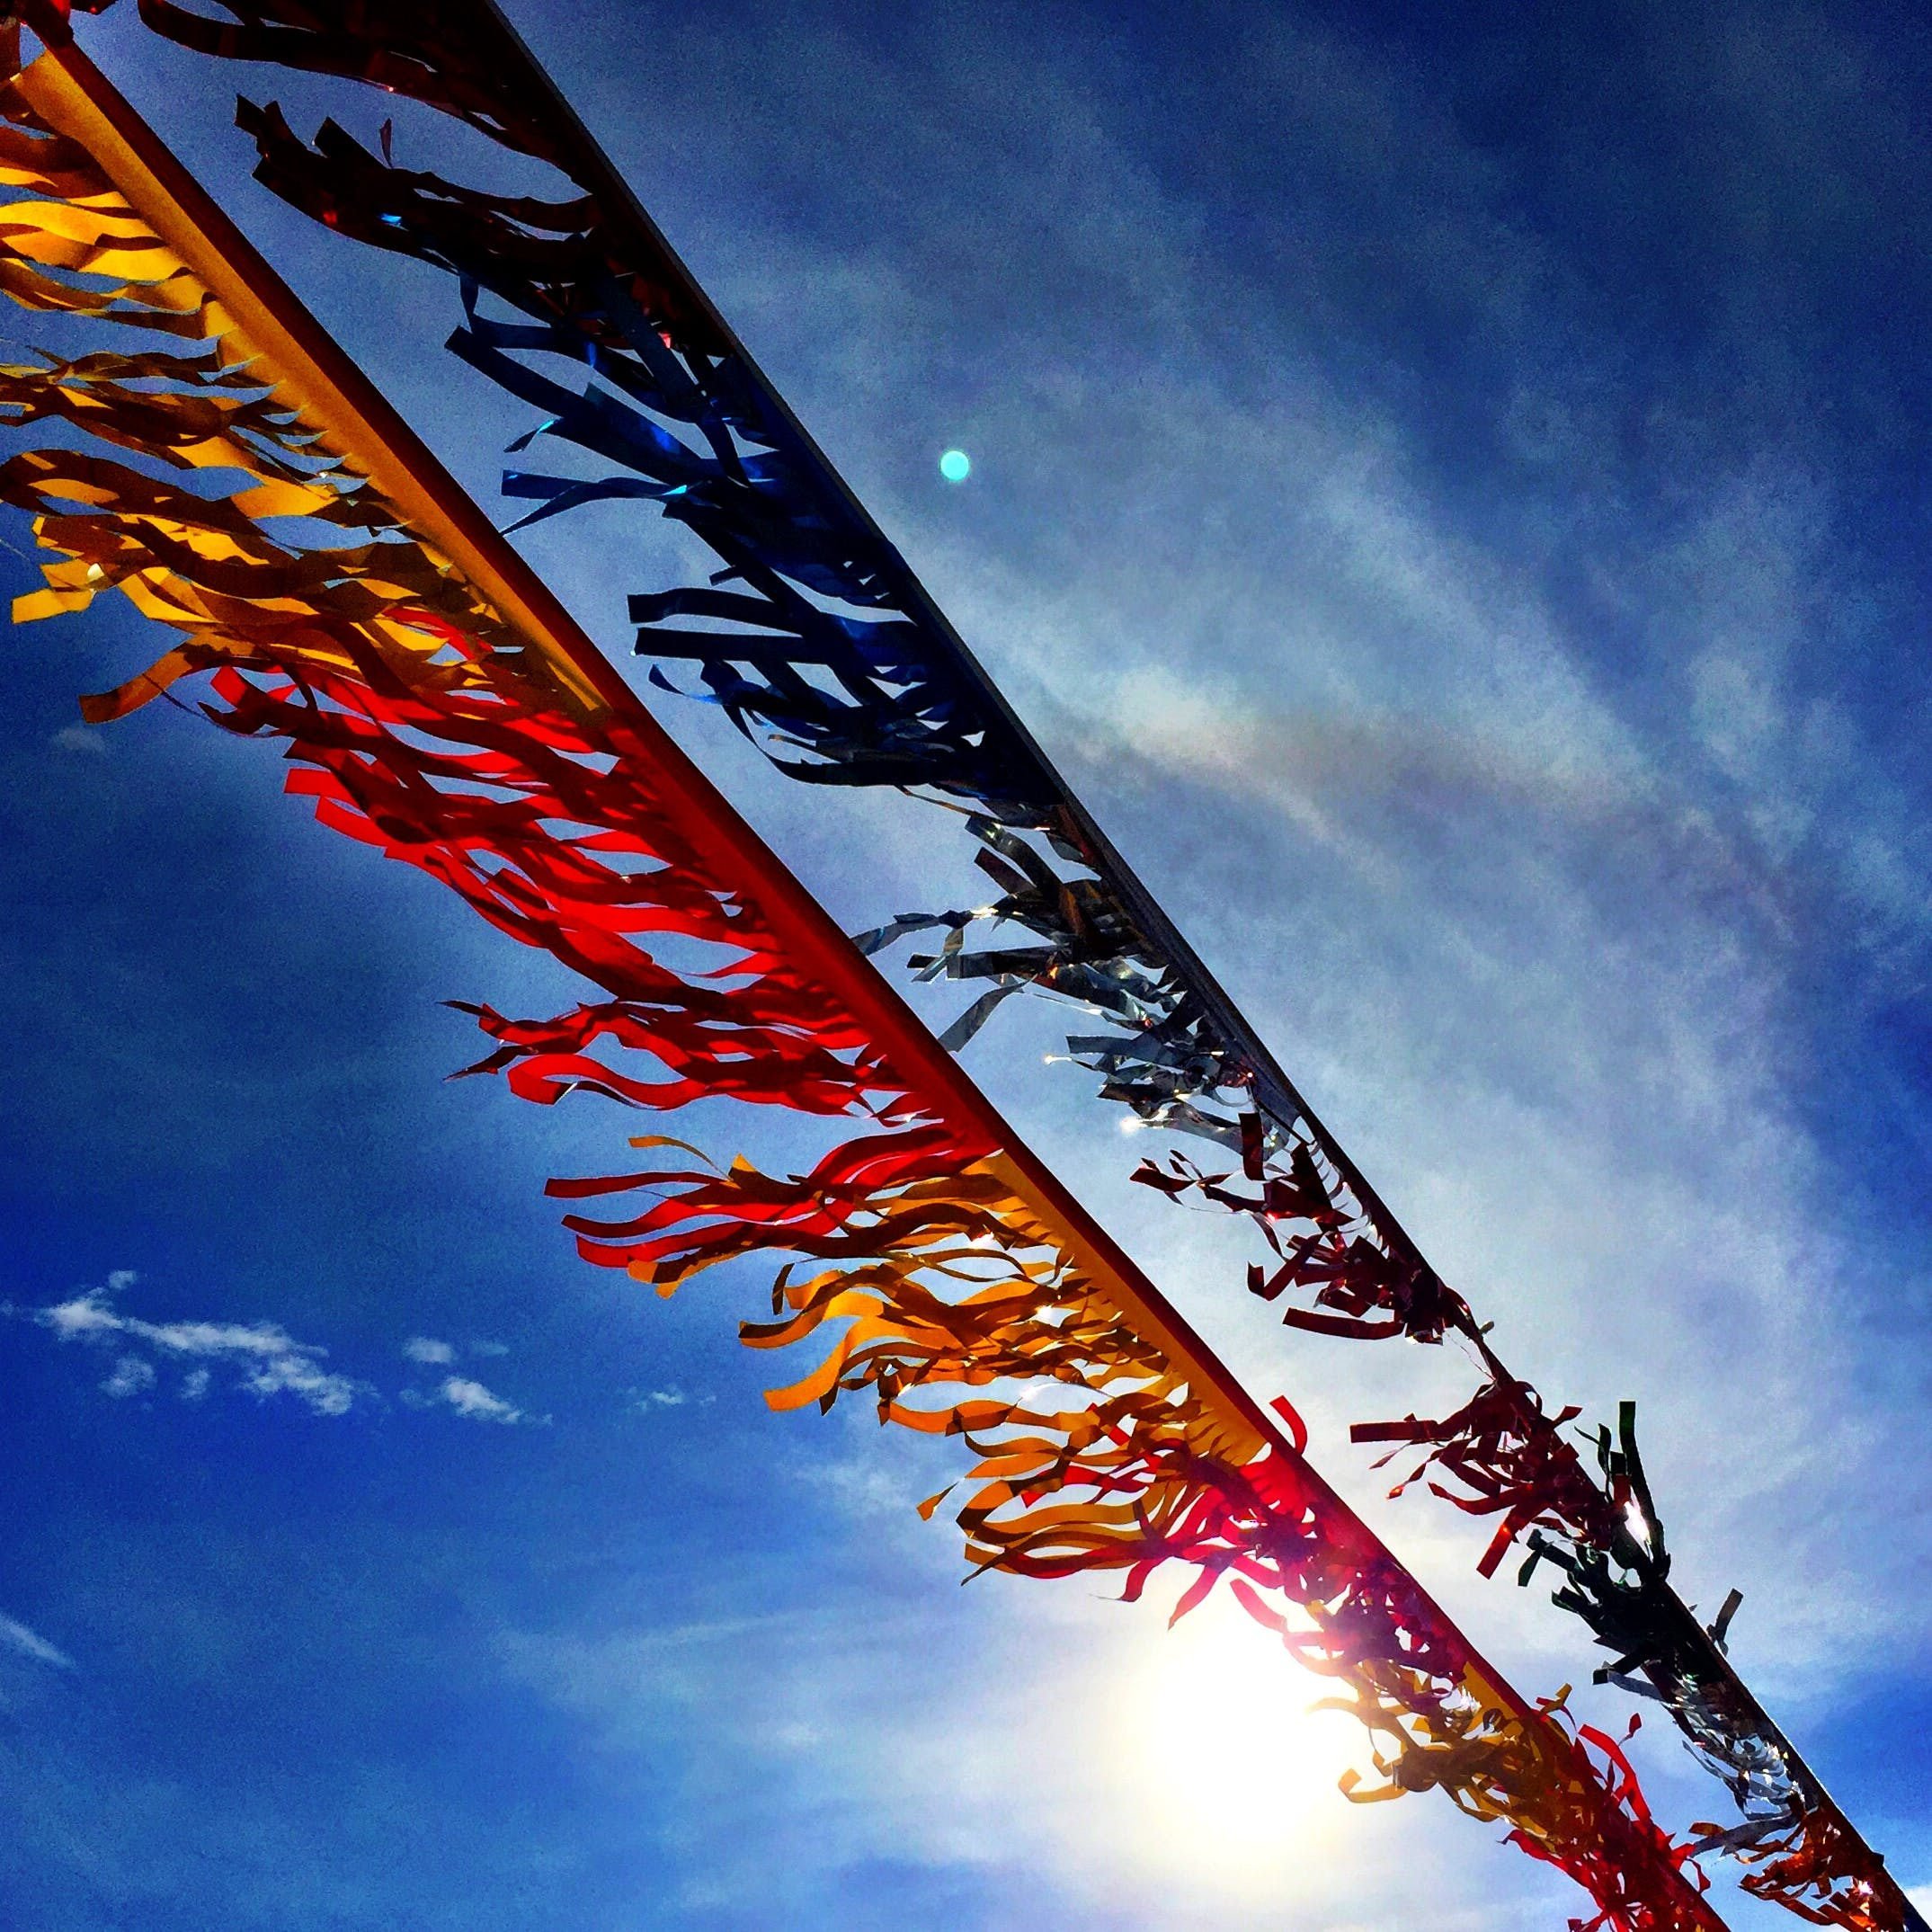 Banners Under Blue Sky